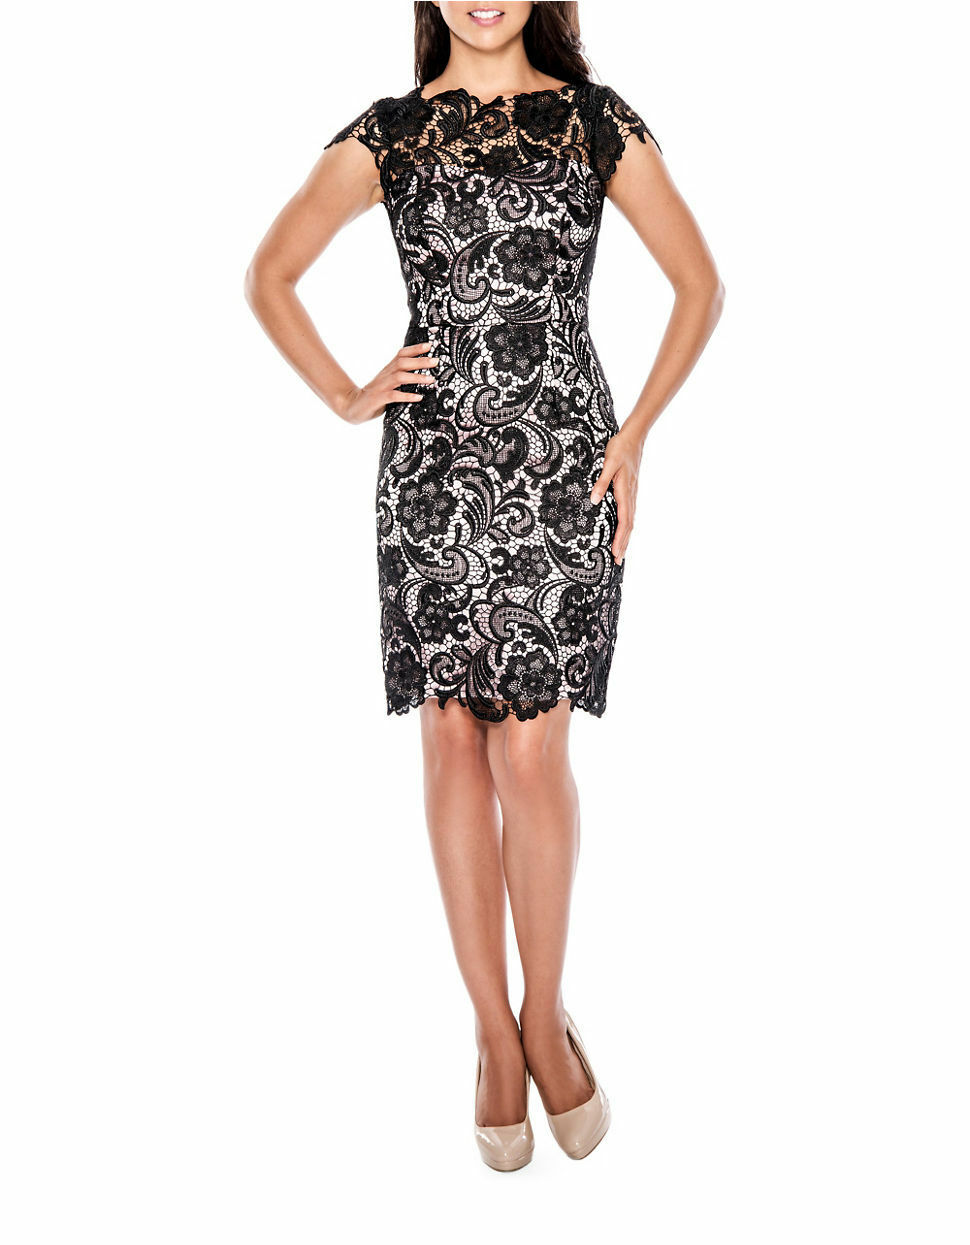 NEW DECODE 1.8 Scalloped Lace Sheath Dress Size 8